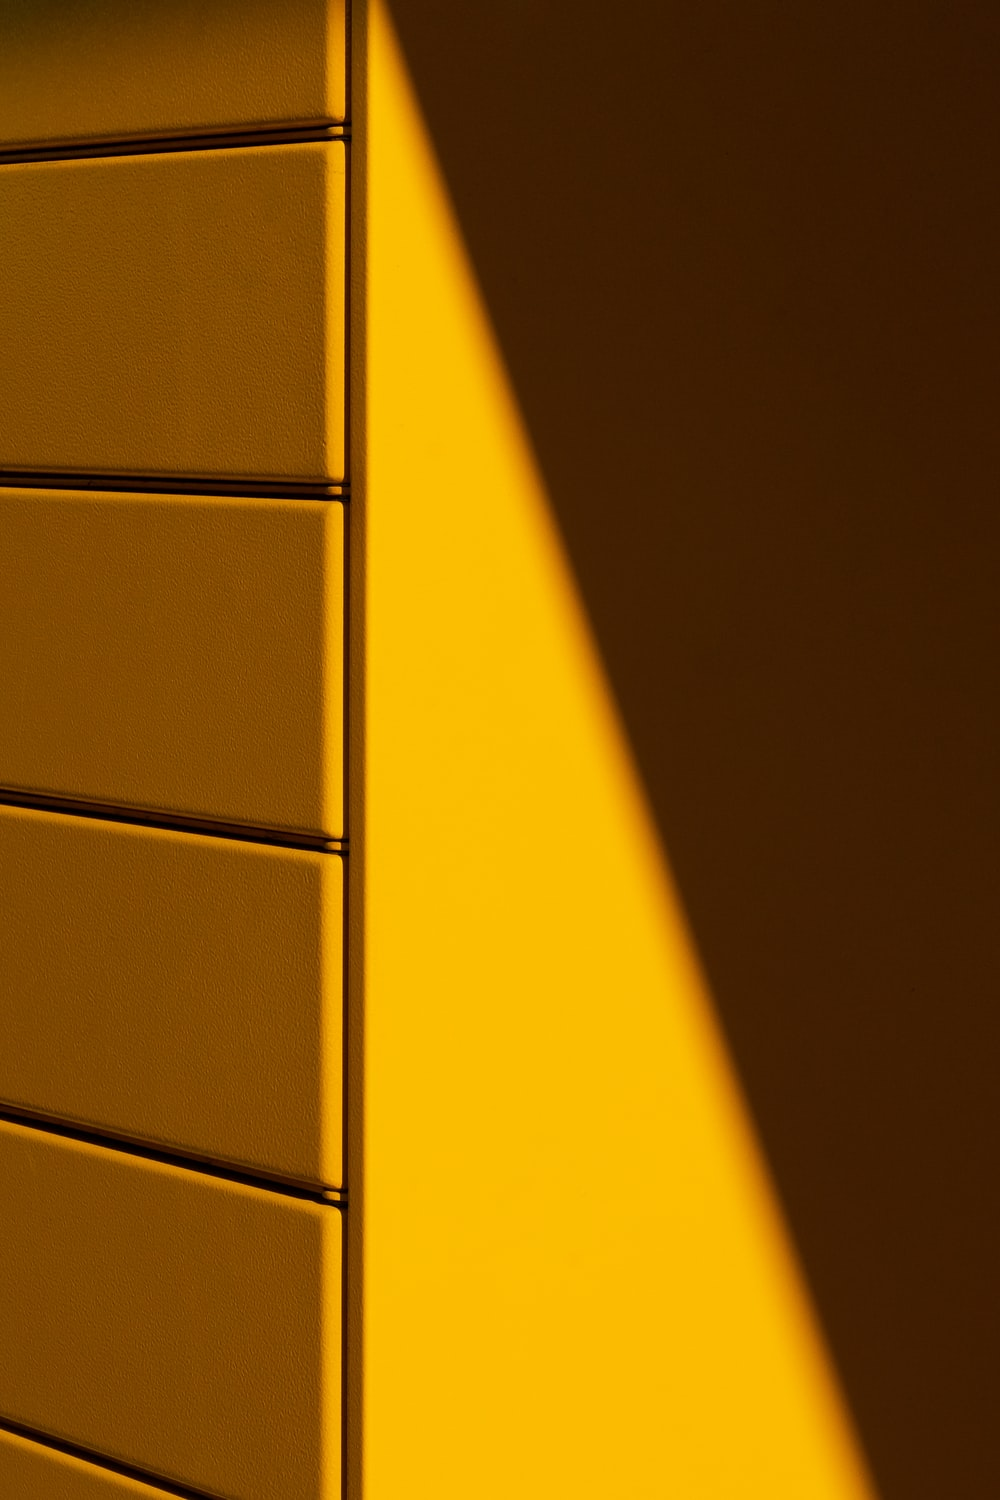 yellow and black wooden cabinet